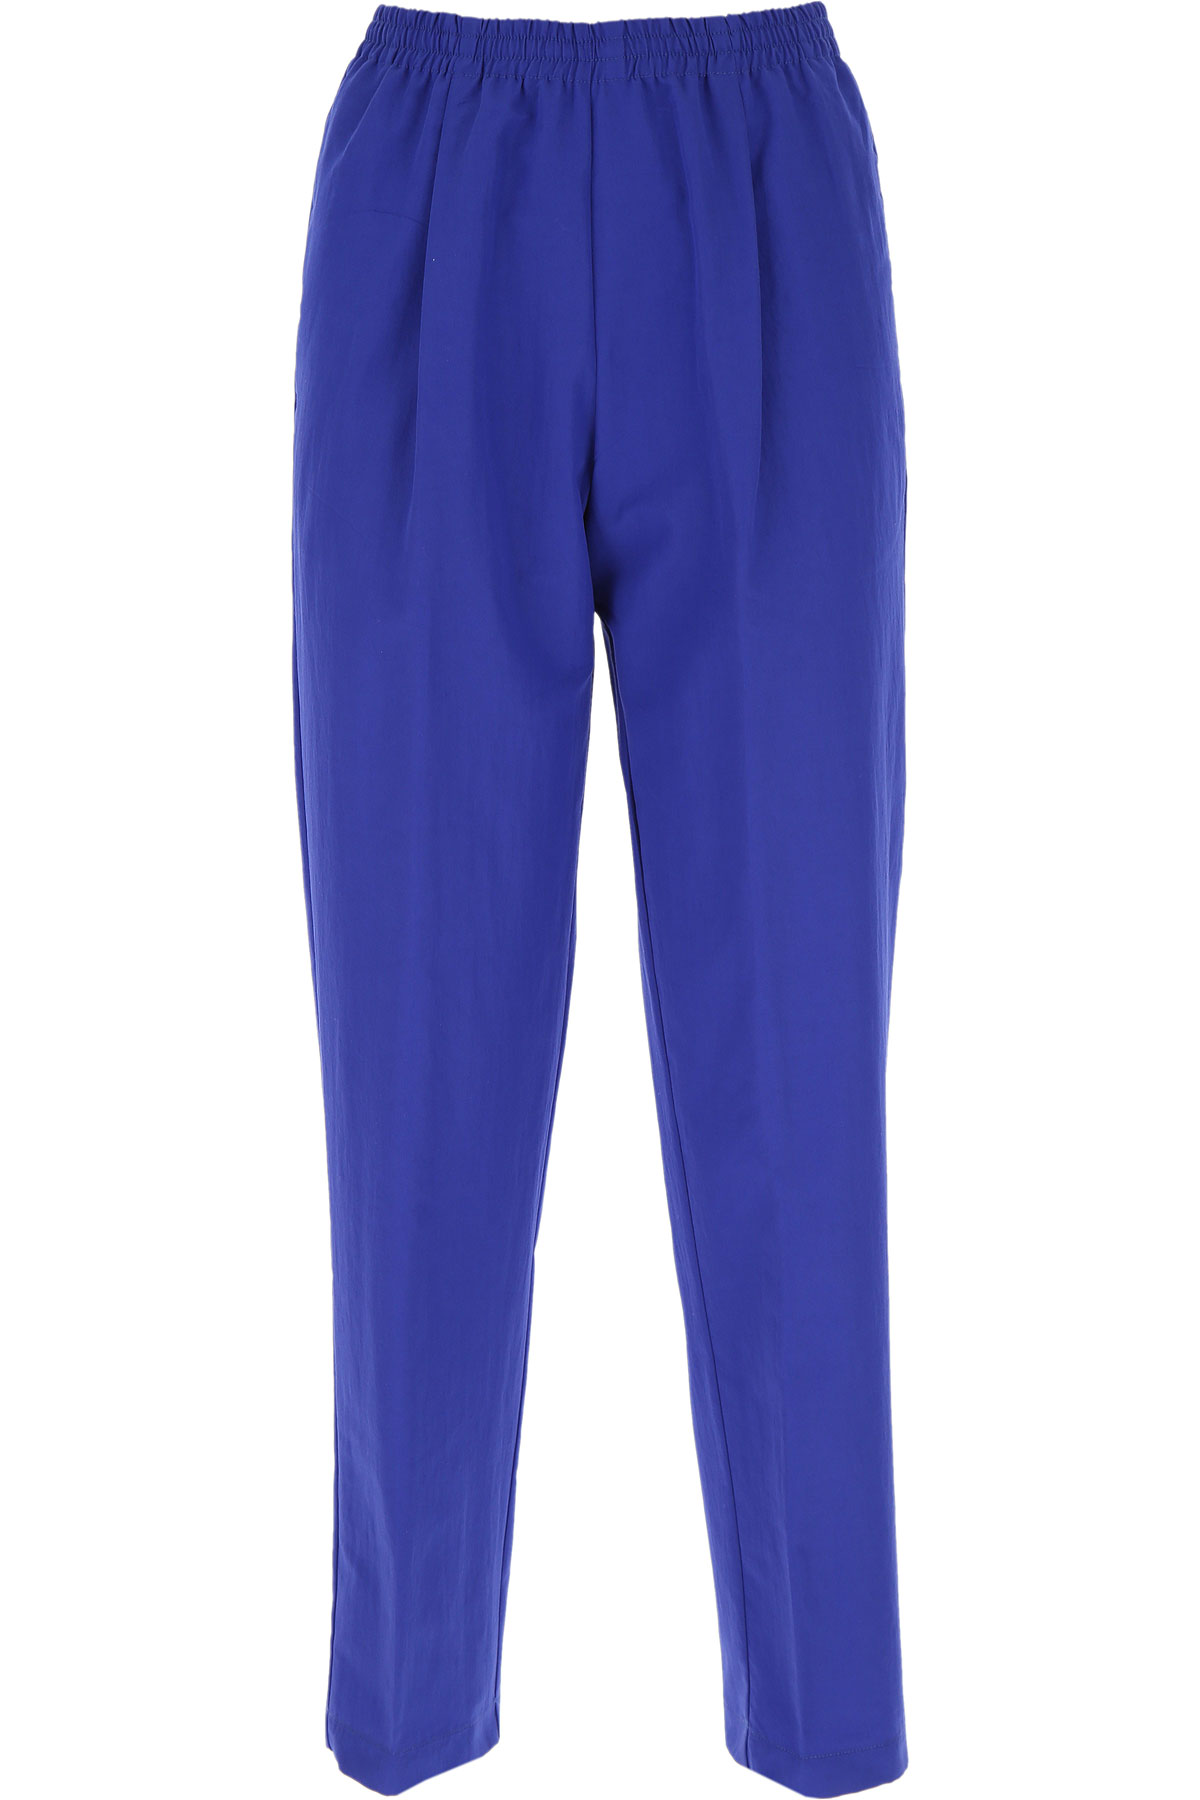 Forte Forte Pants for Women On Sale, Majorelle Blue, Cotton, 2019